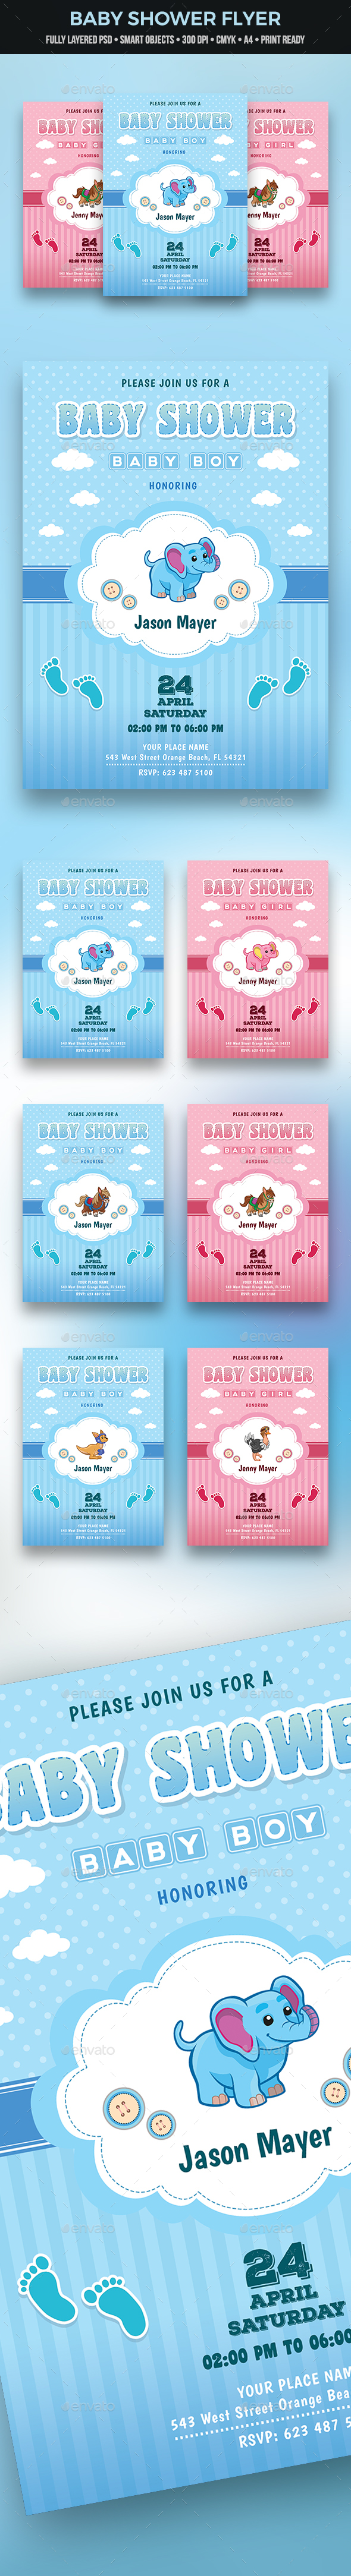 Baby Shower Flyer - Cards & Invites Print Templates